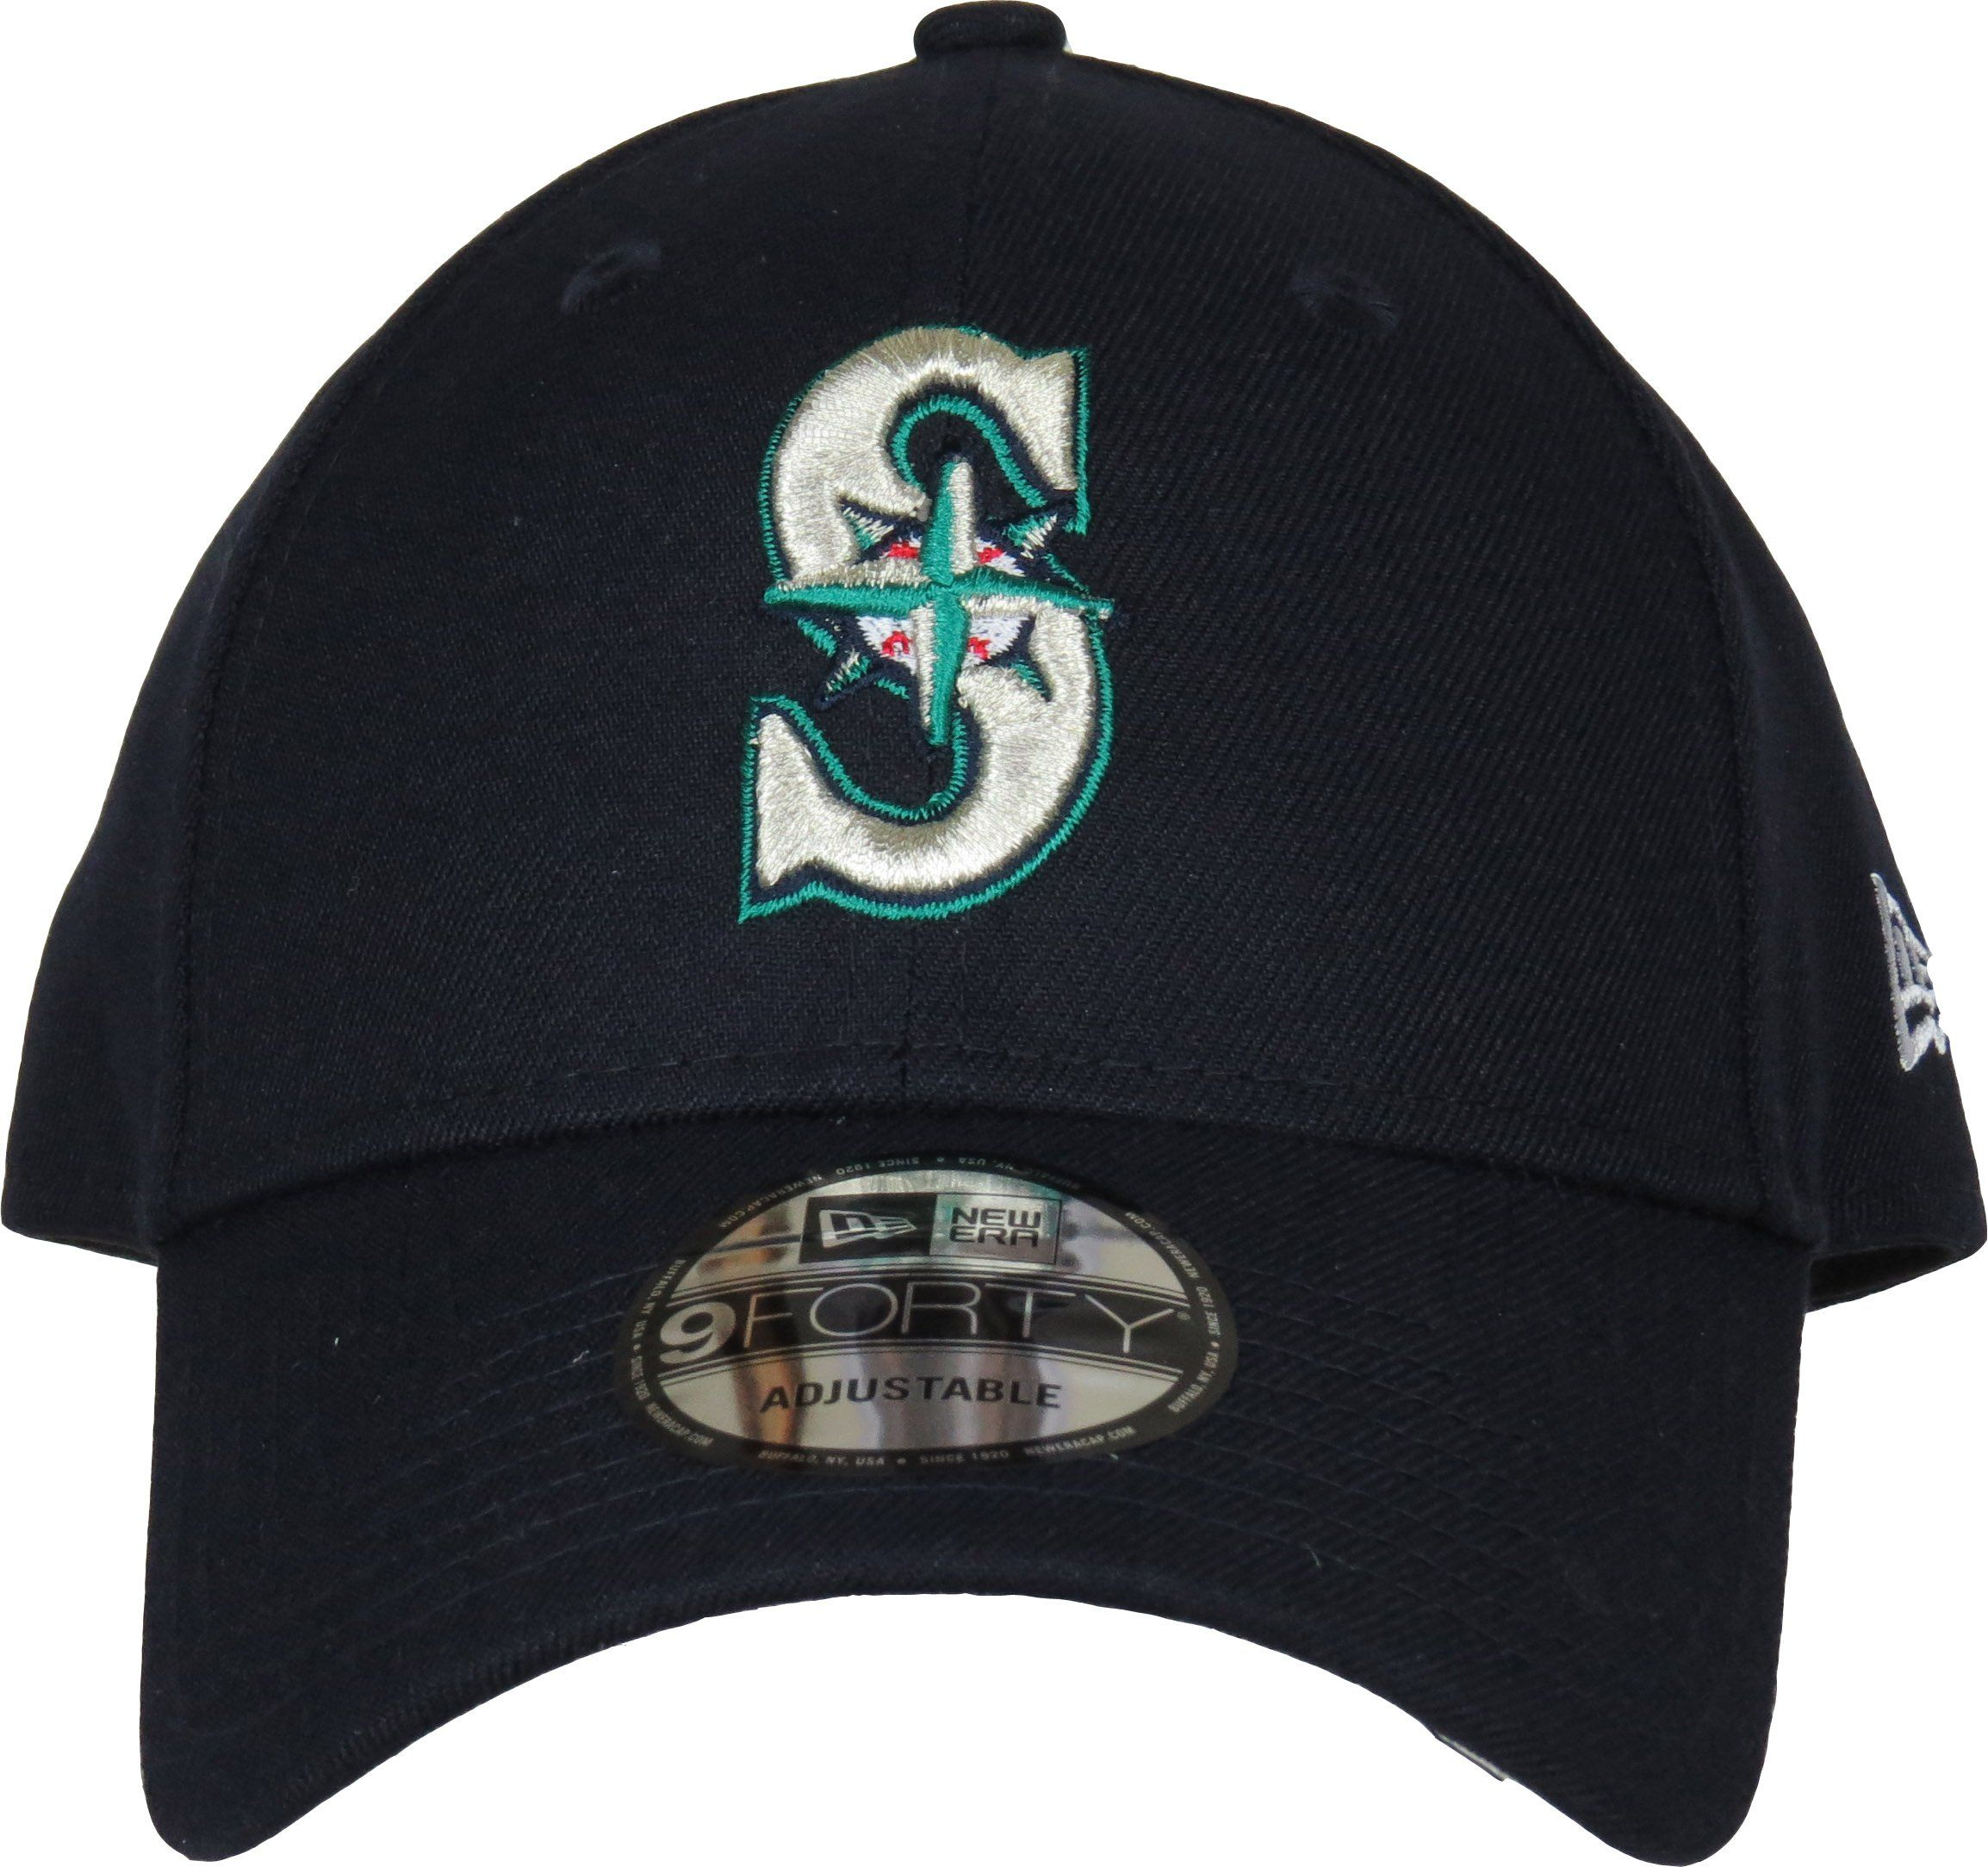 newest 1fa83 2536f New Era 9Forty MLB The League Adjustable Baseball Cap. Navy Blue with the Seattle  Mariners front logo, the New Era side logo, and the Mariners rear strap ...